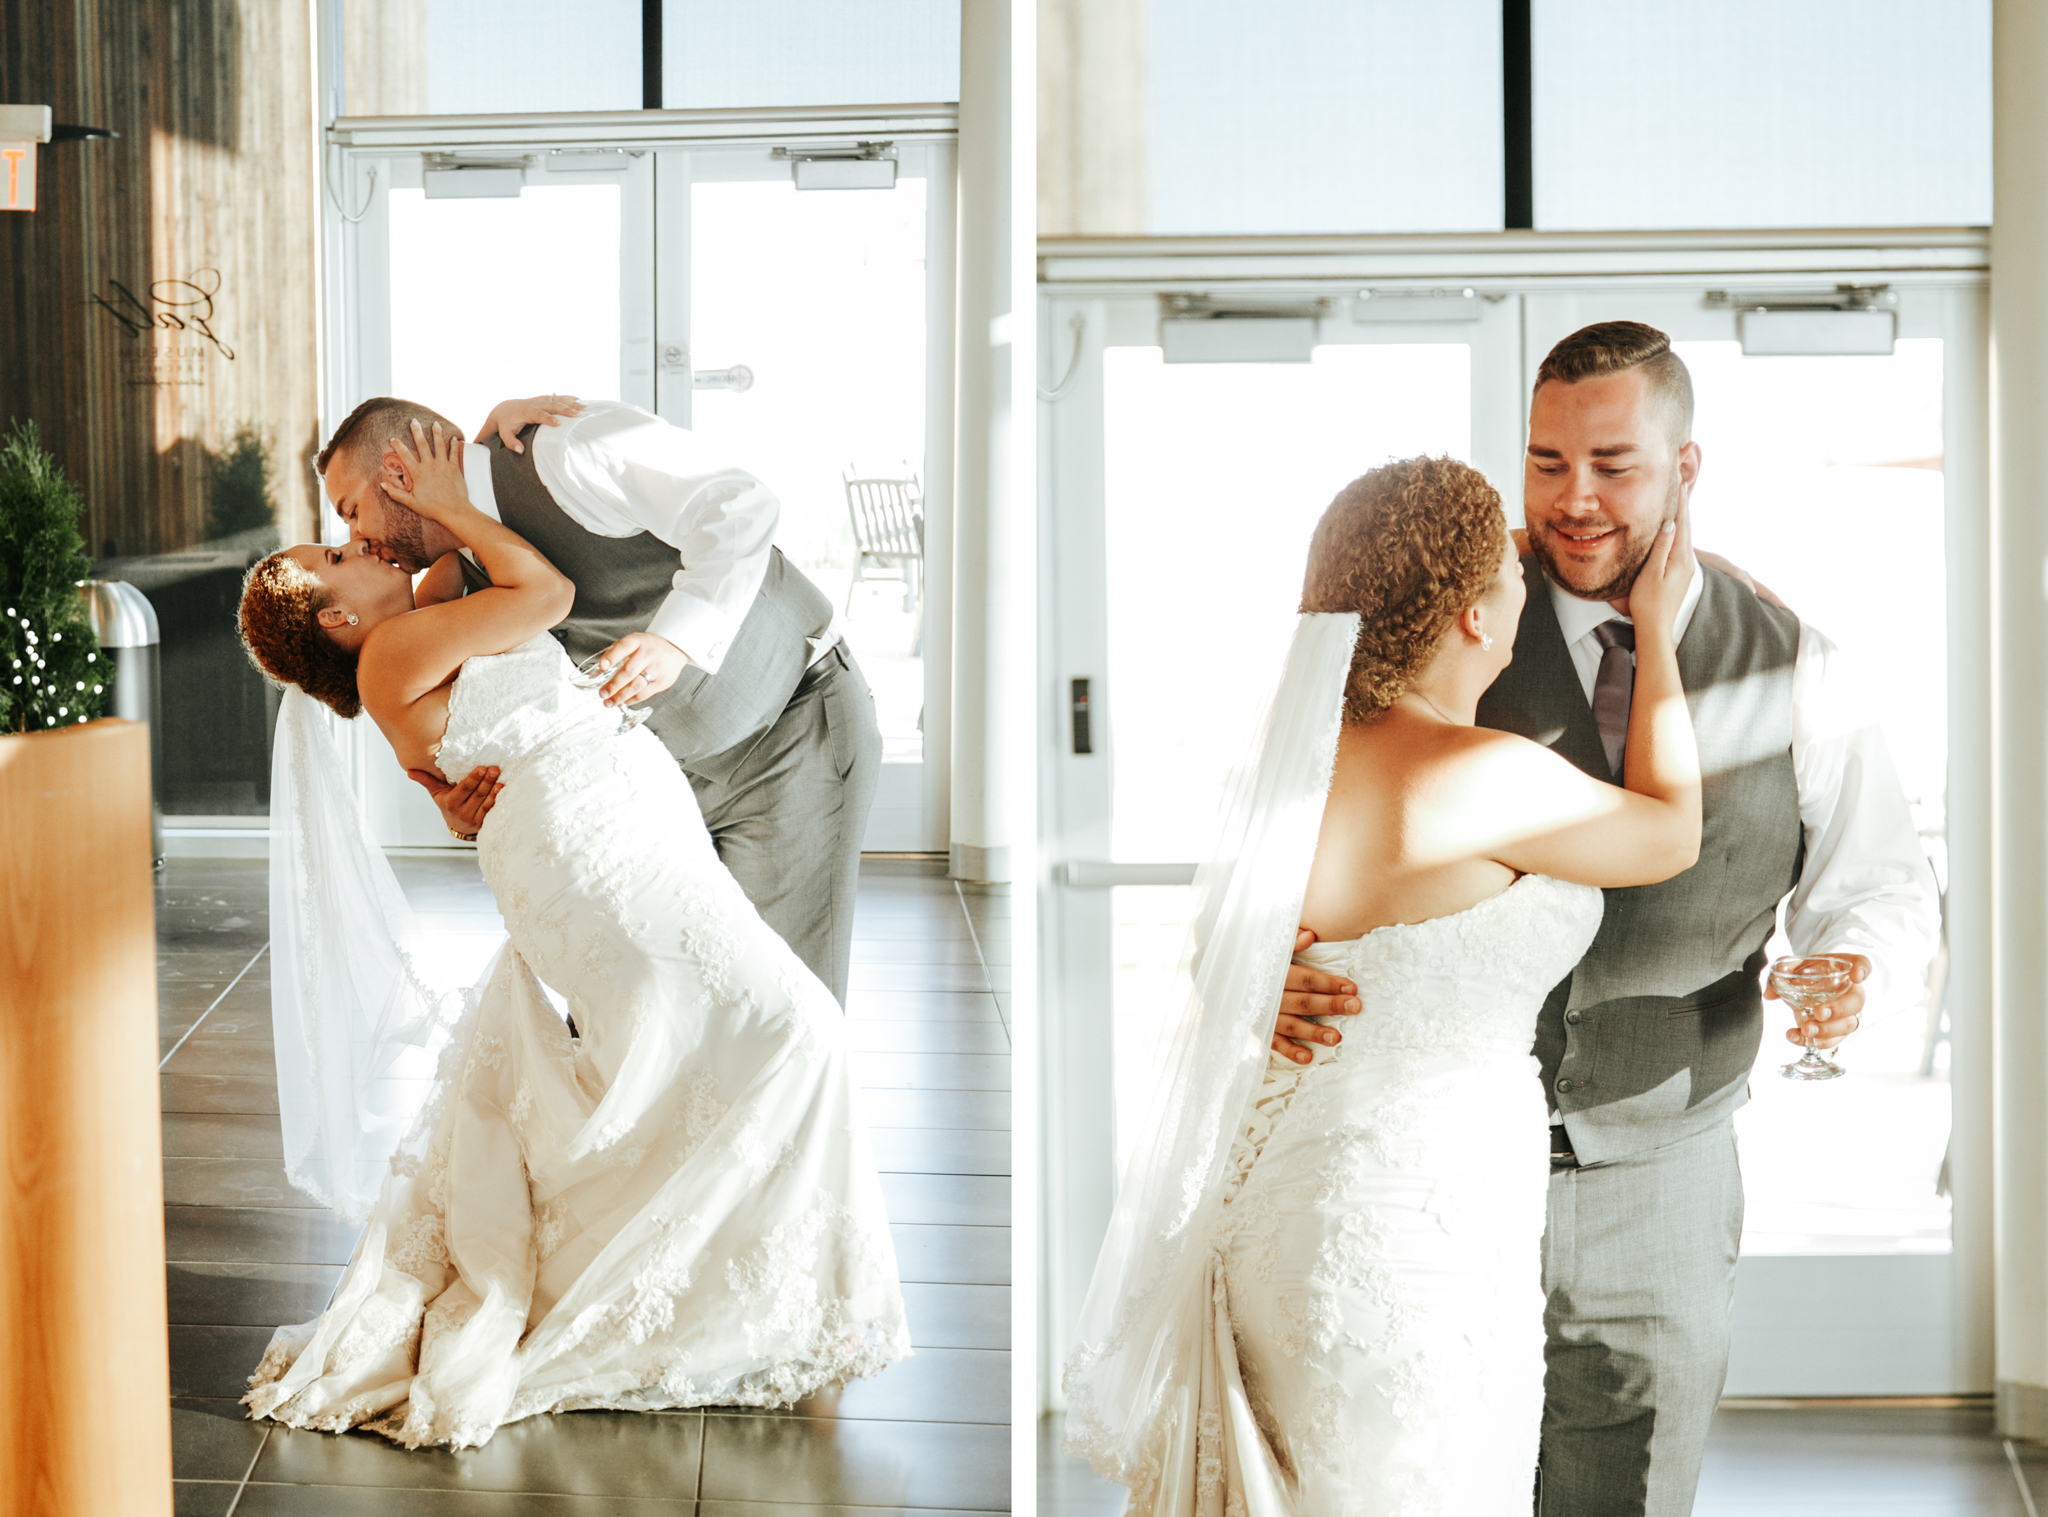 lethbridge-wedding-photographer-love-and-be-loved-photography-trent-danielle-galt-reception-picture-image-photo-230.jpg